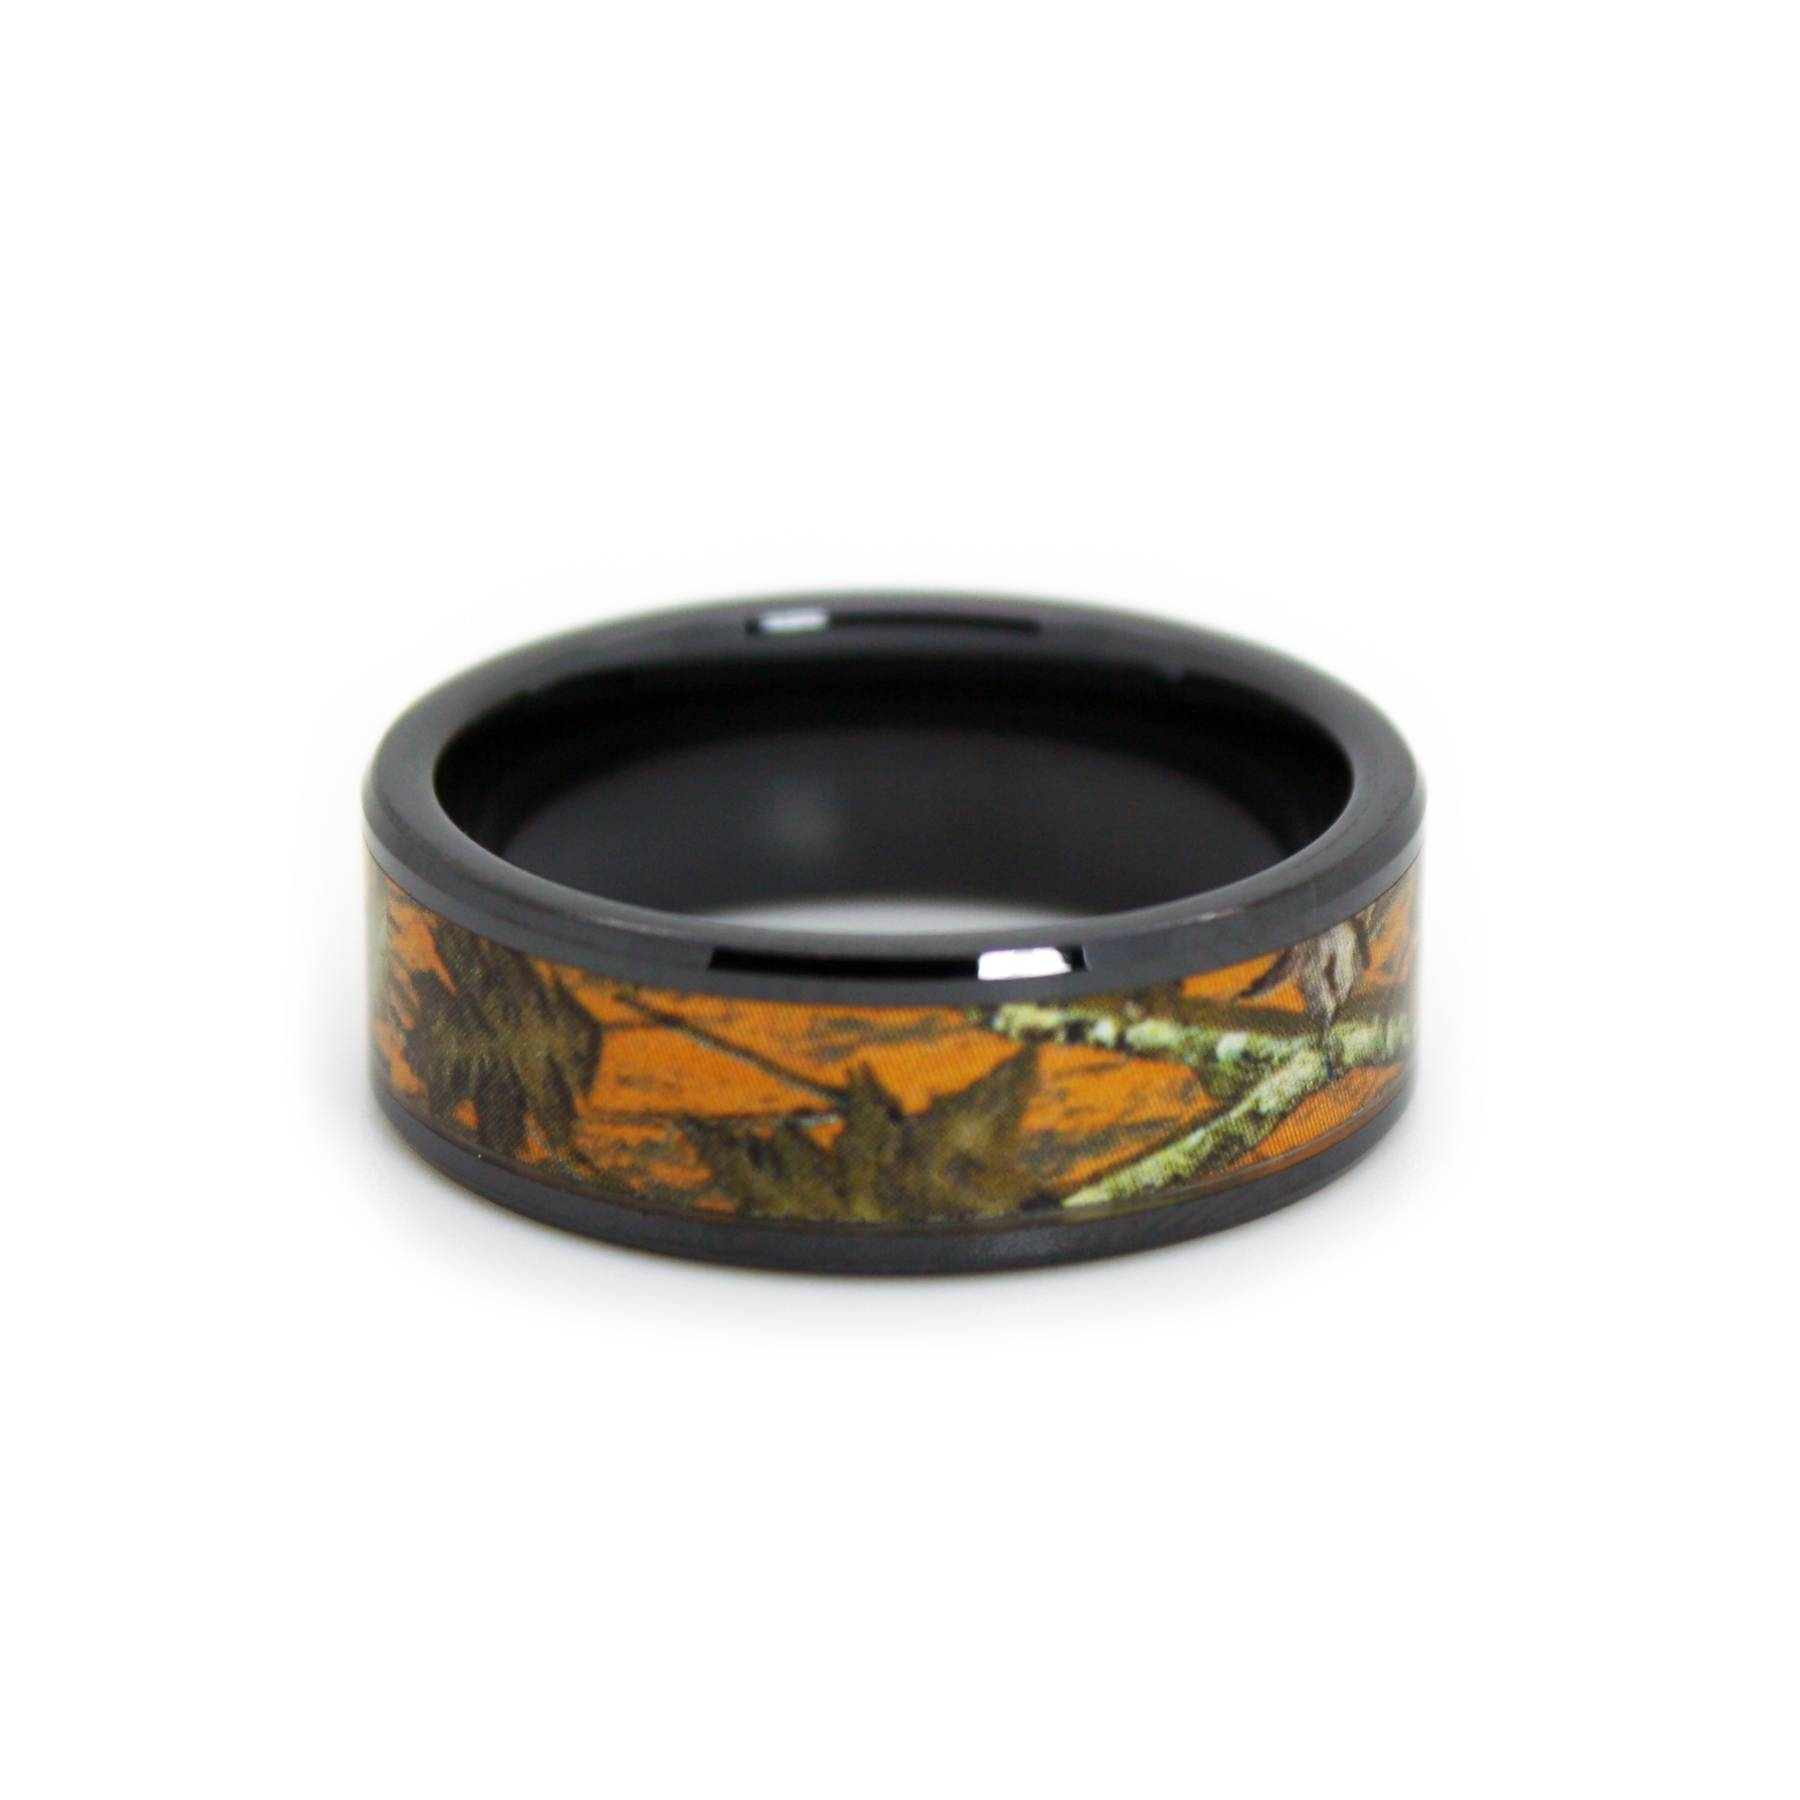 Electrician Rings – Camouflage Wedding Rings For $99 From #1 Camo Intended For Wedding Bands For Electrician (View 13 of 15)